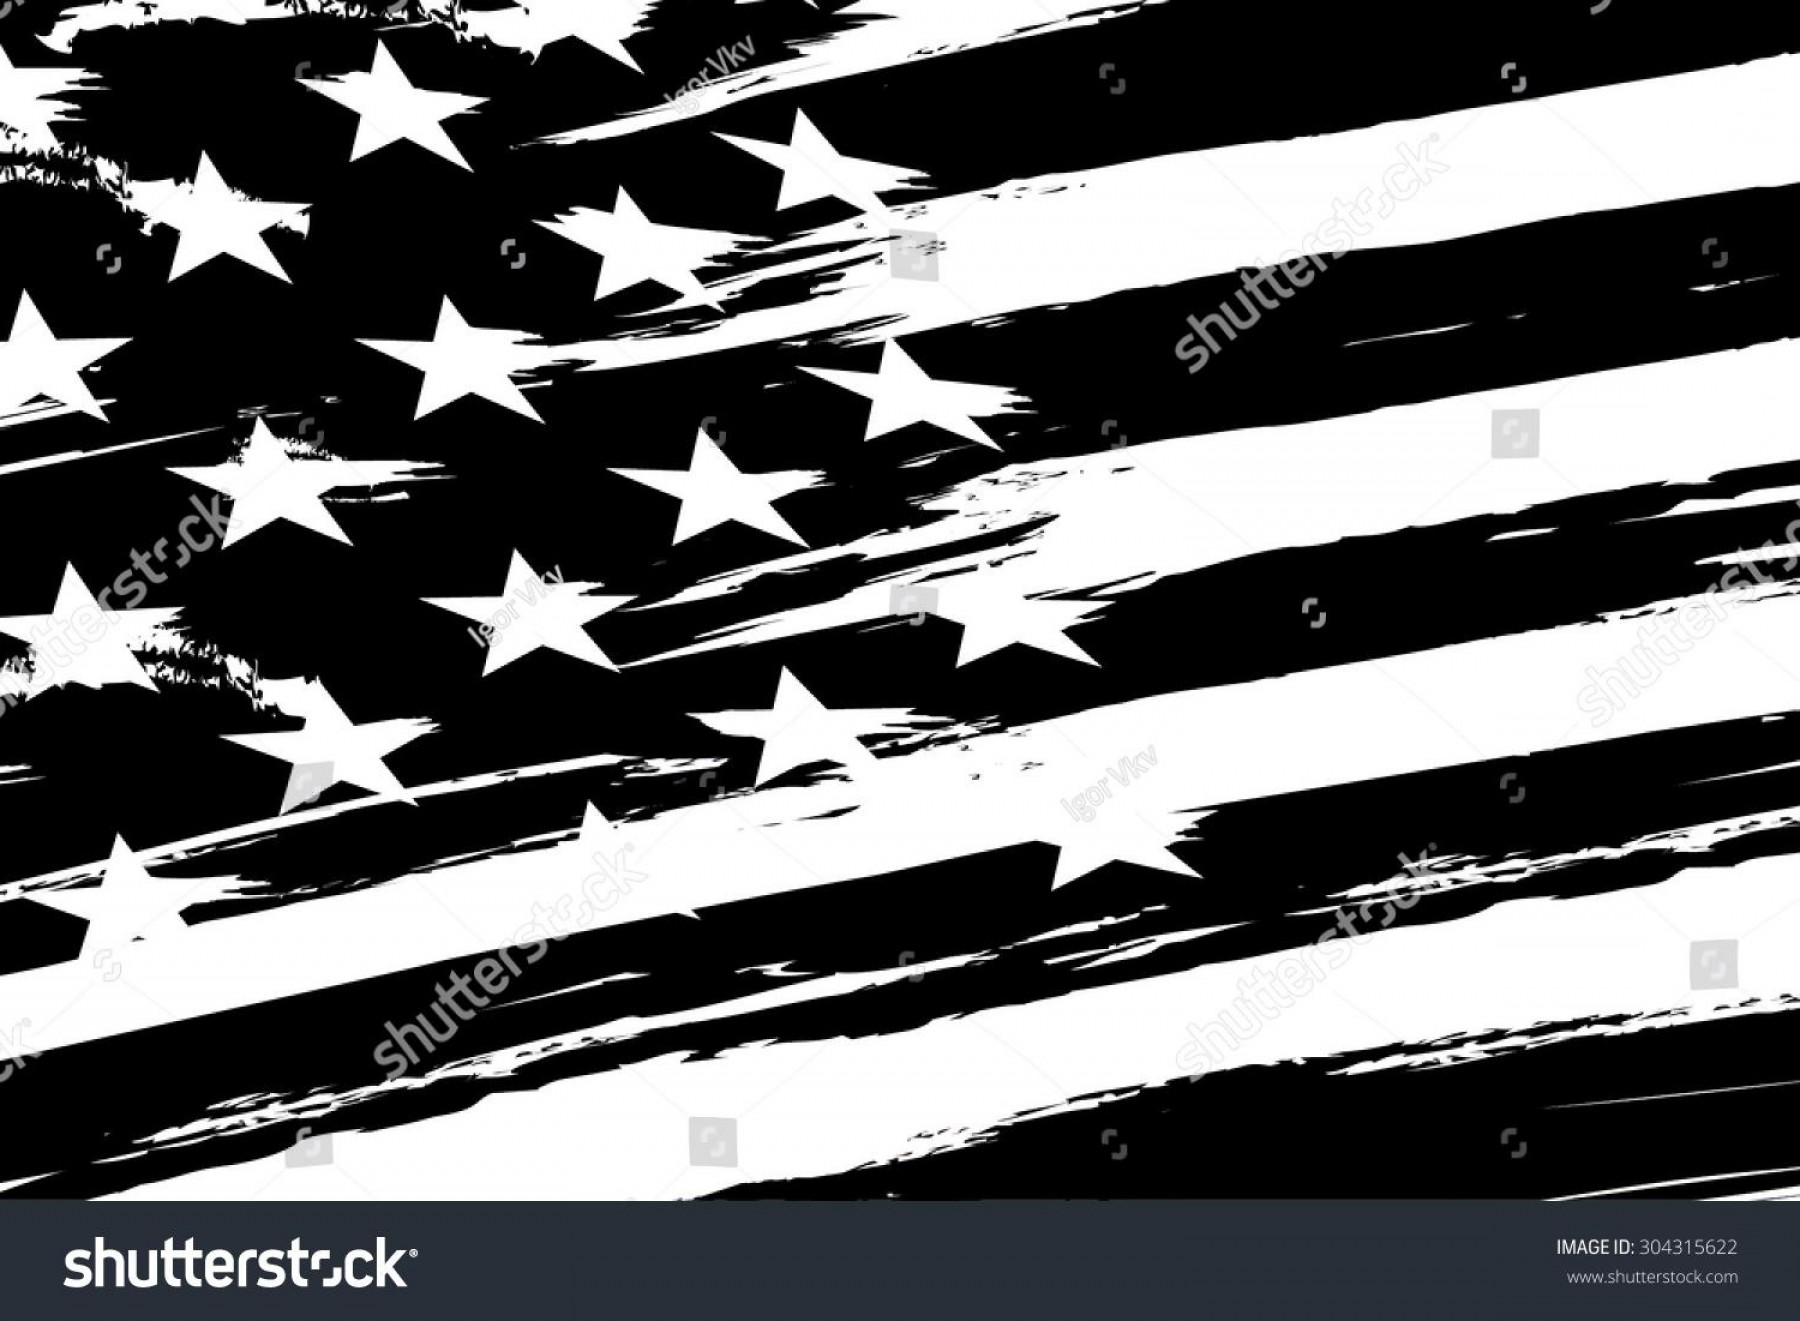 1800x1321 Hd Black And White Tattered American Flag Vector Design Lazttweet